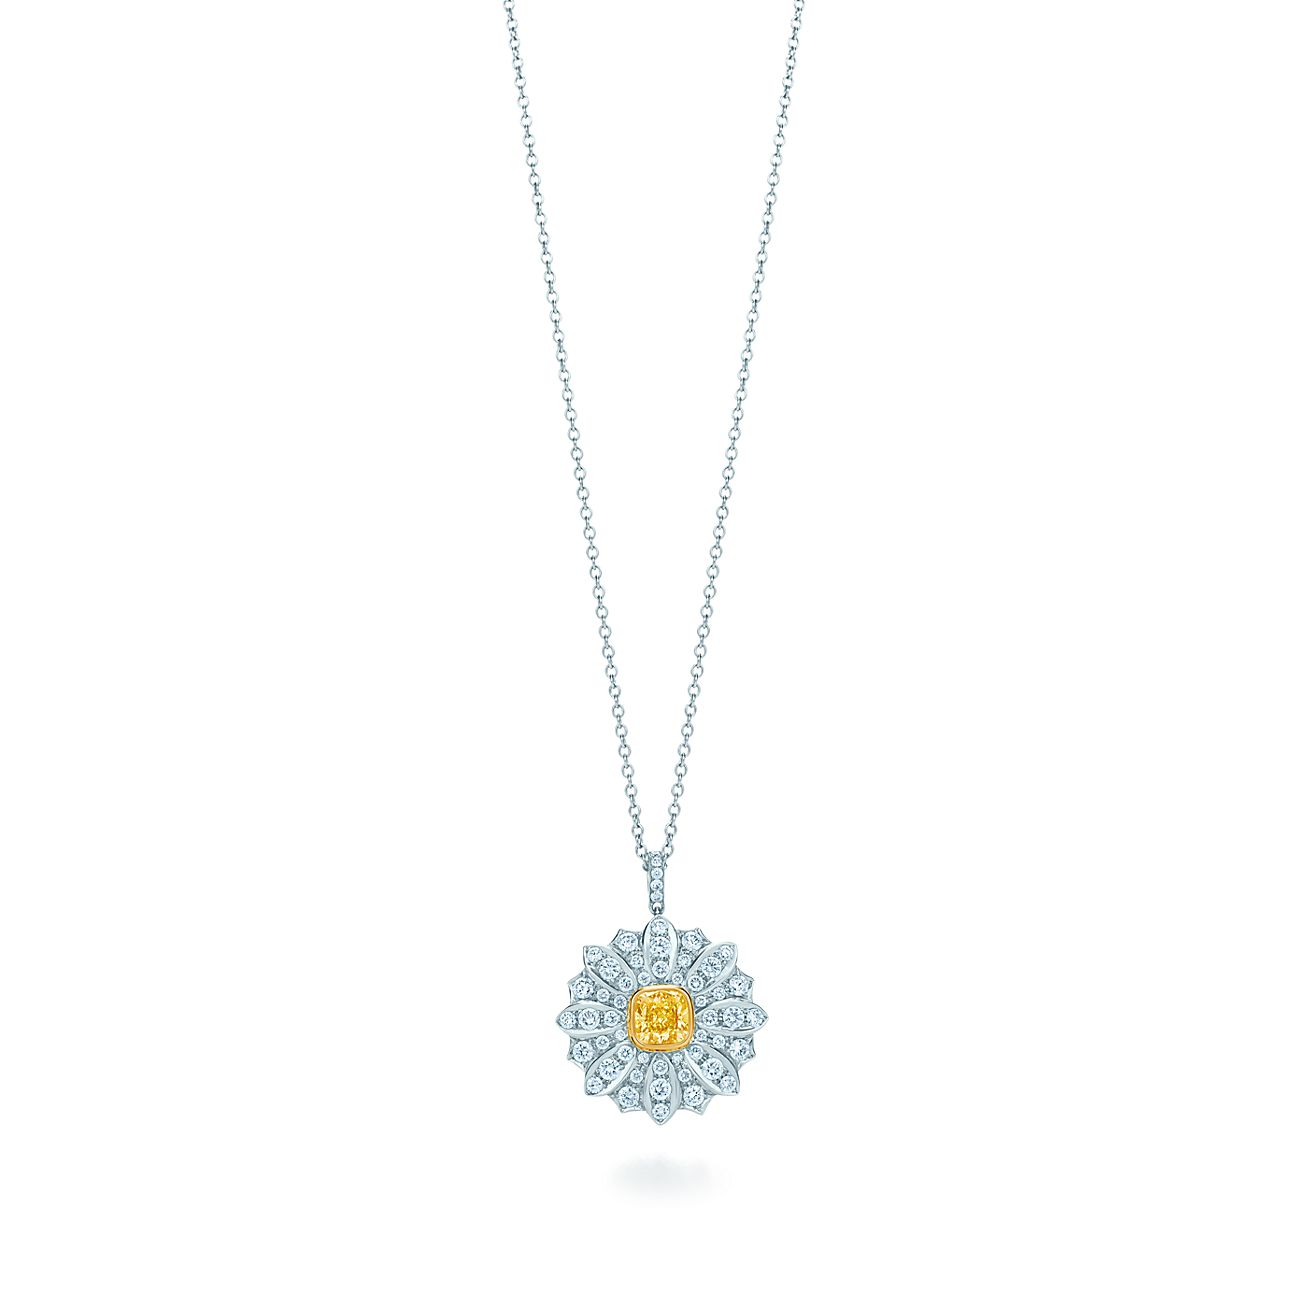 konplott pendant daisy love you kp not blue aqua necklace enamel green